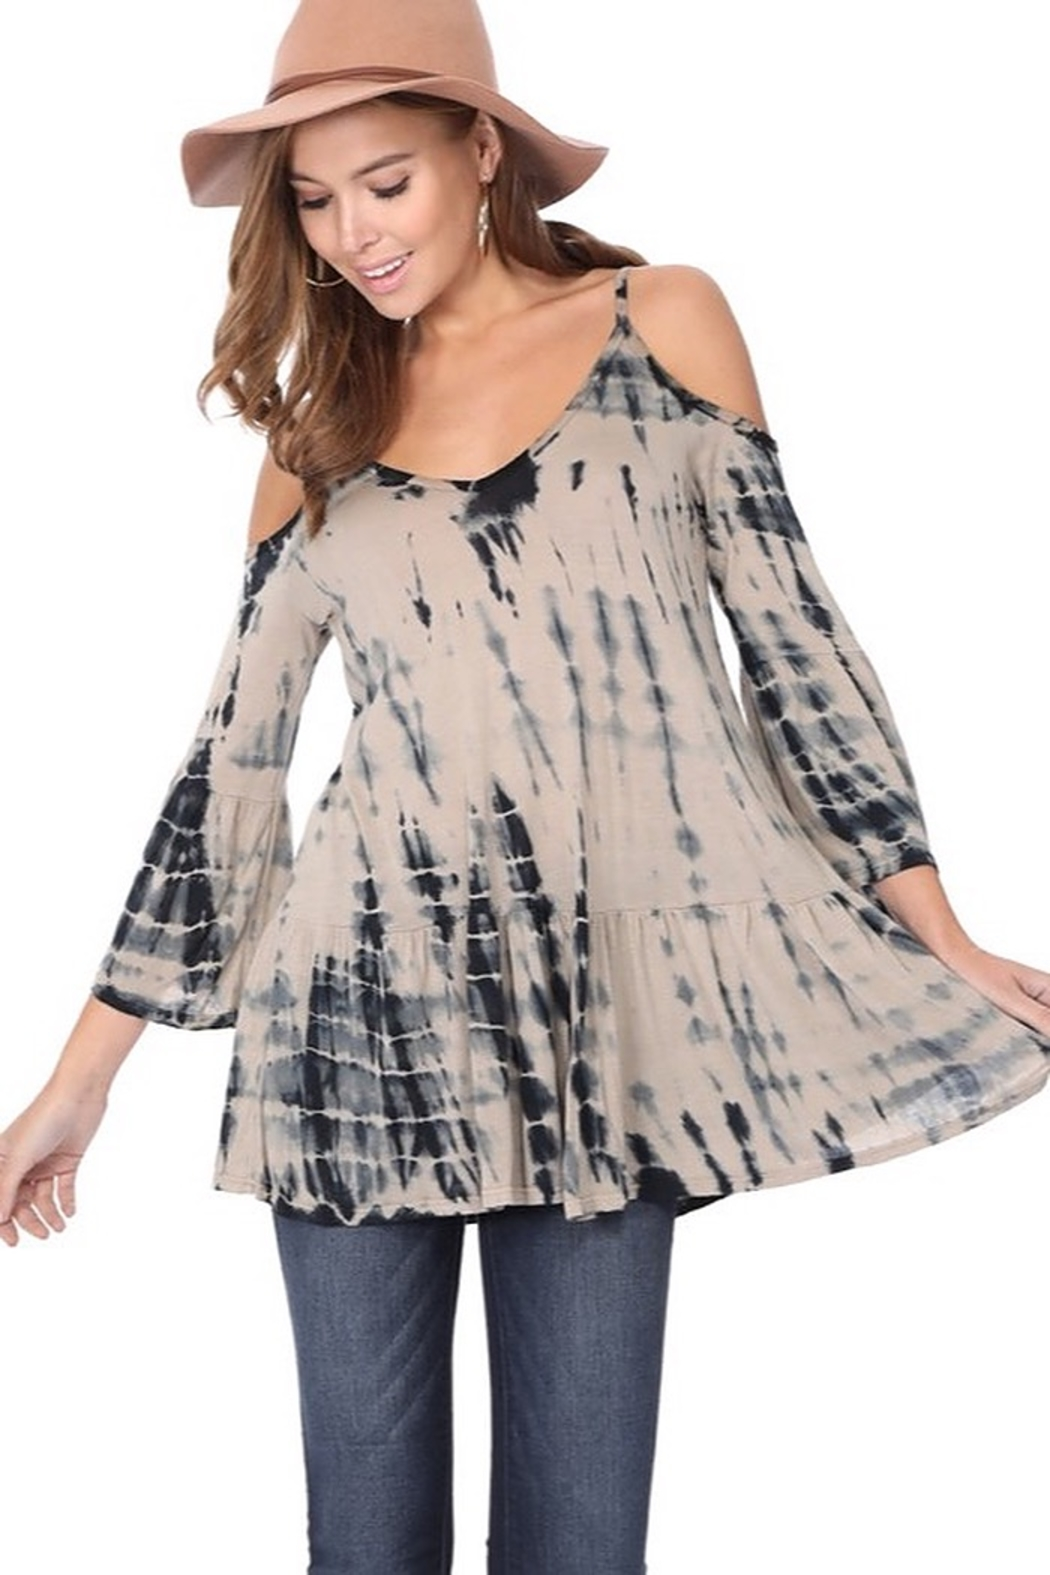 Tparty Bamboo Tie Dye Flowy Cold Shoulder Top - Main Image